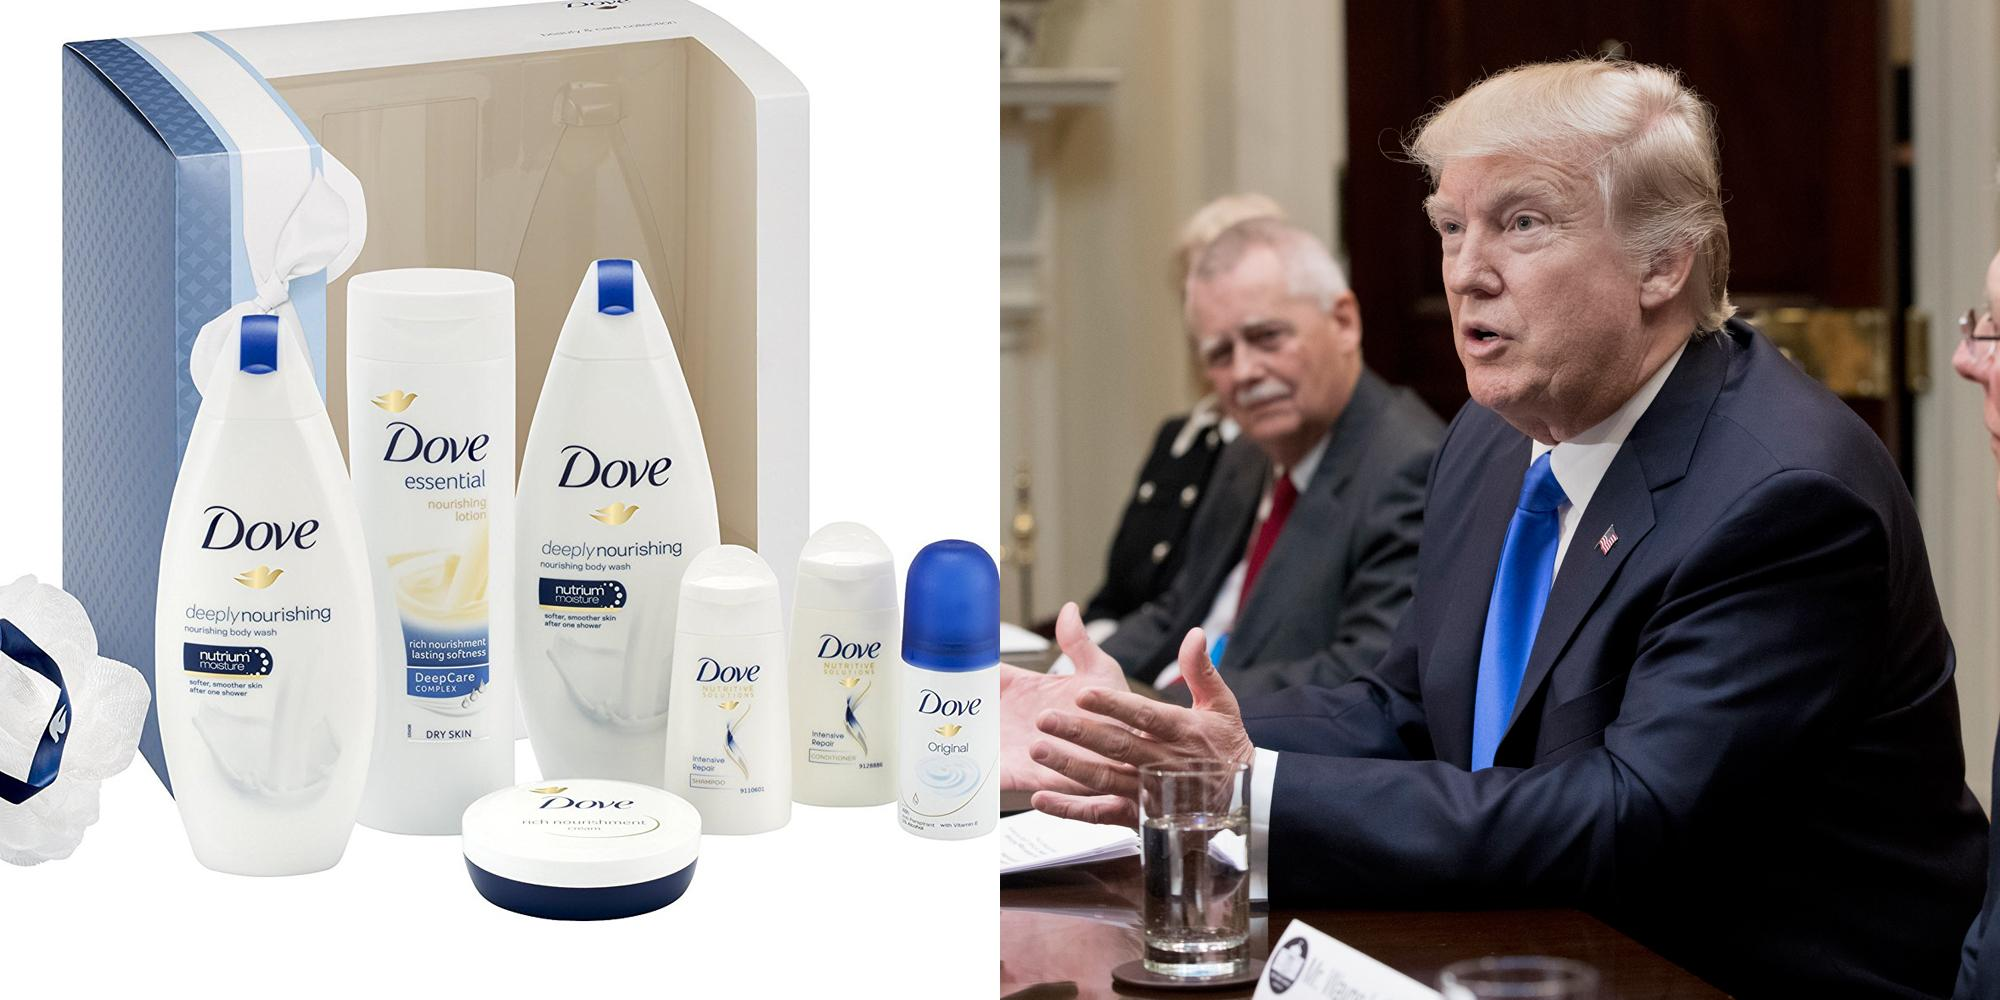 This new Dove antiperspirant advert trolls Donald Trump, and it's perfect